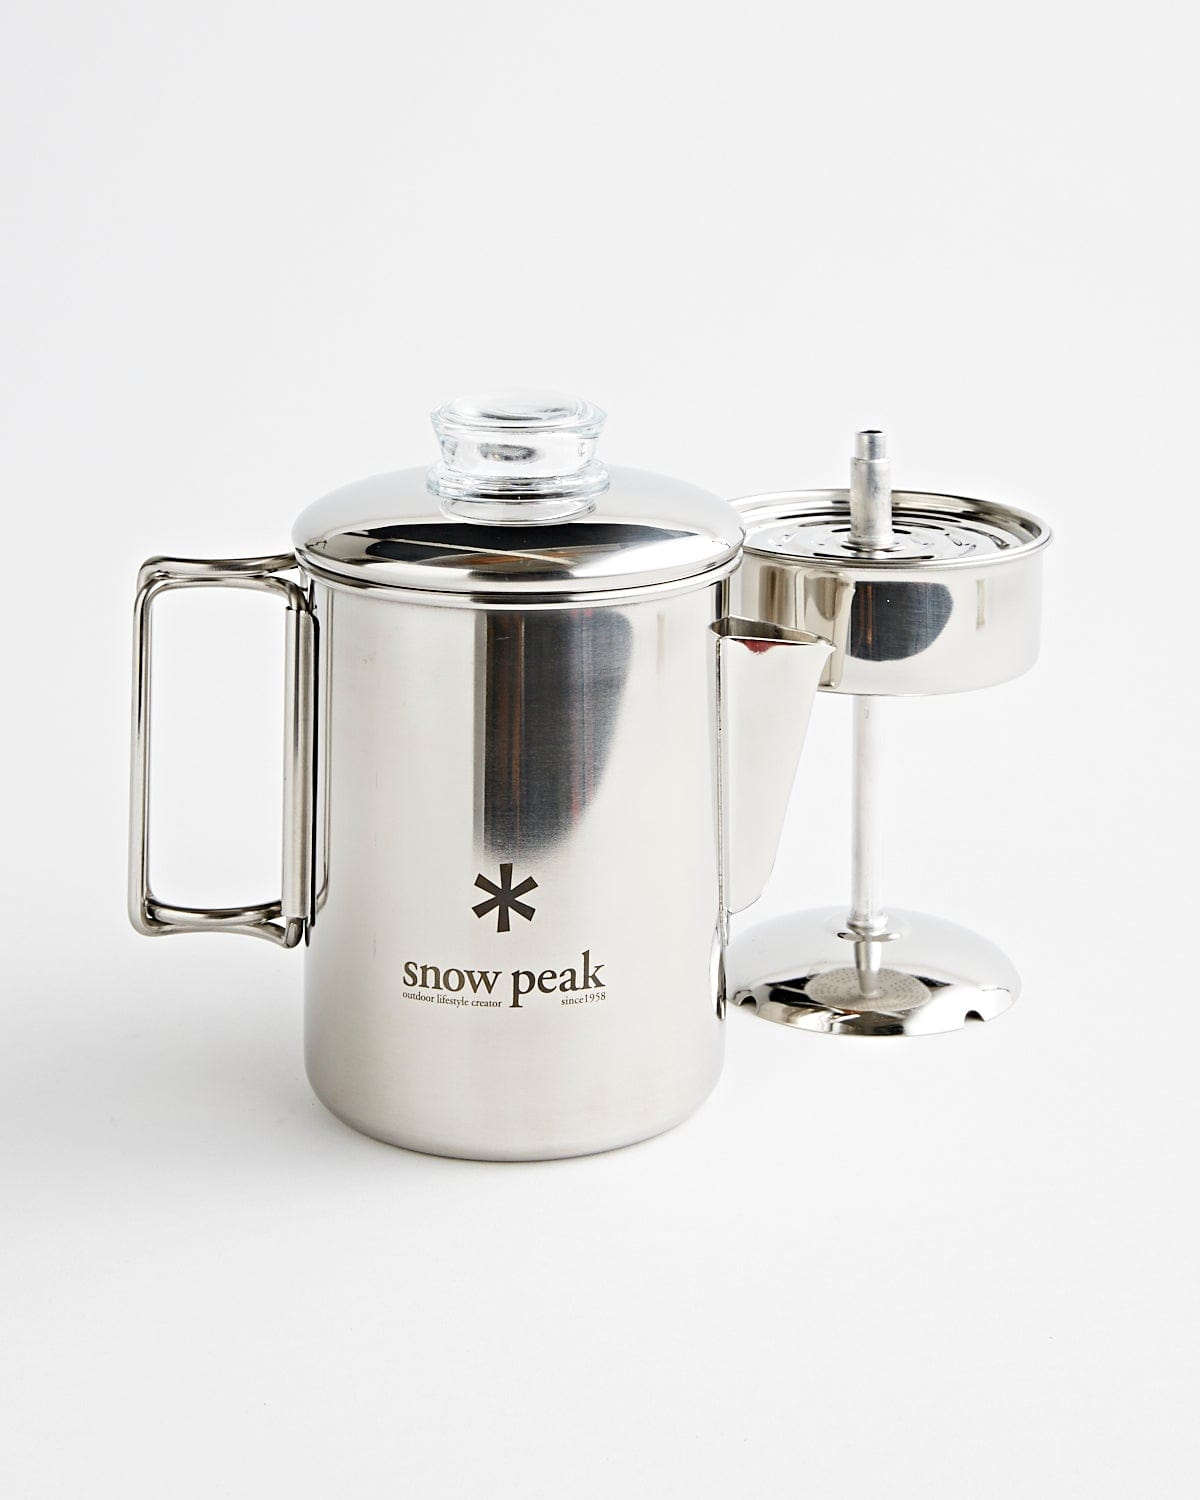 Stainless-Steel Coffee Percolator 6 Cups